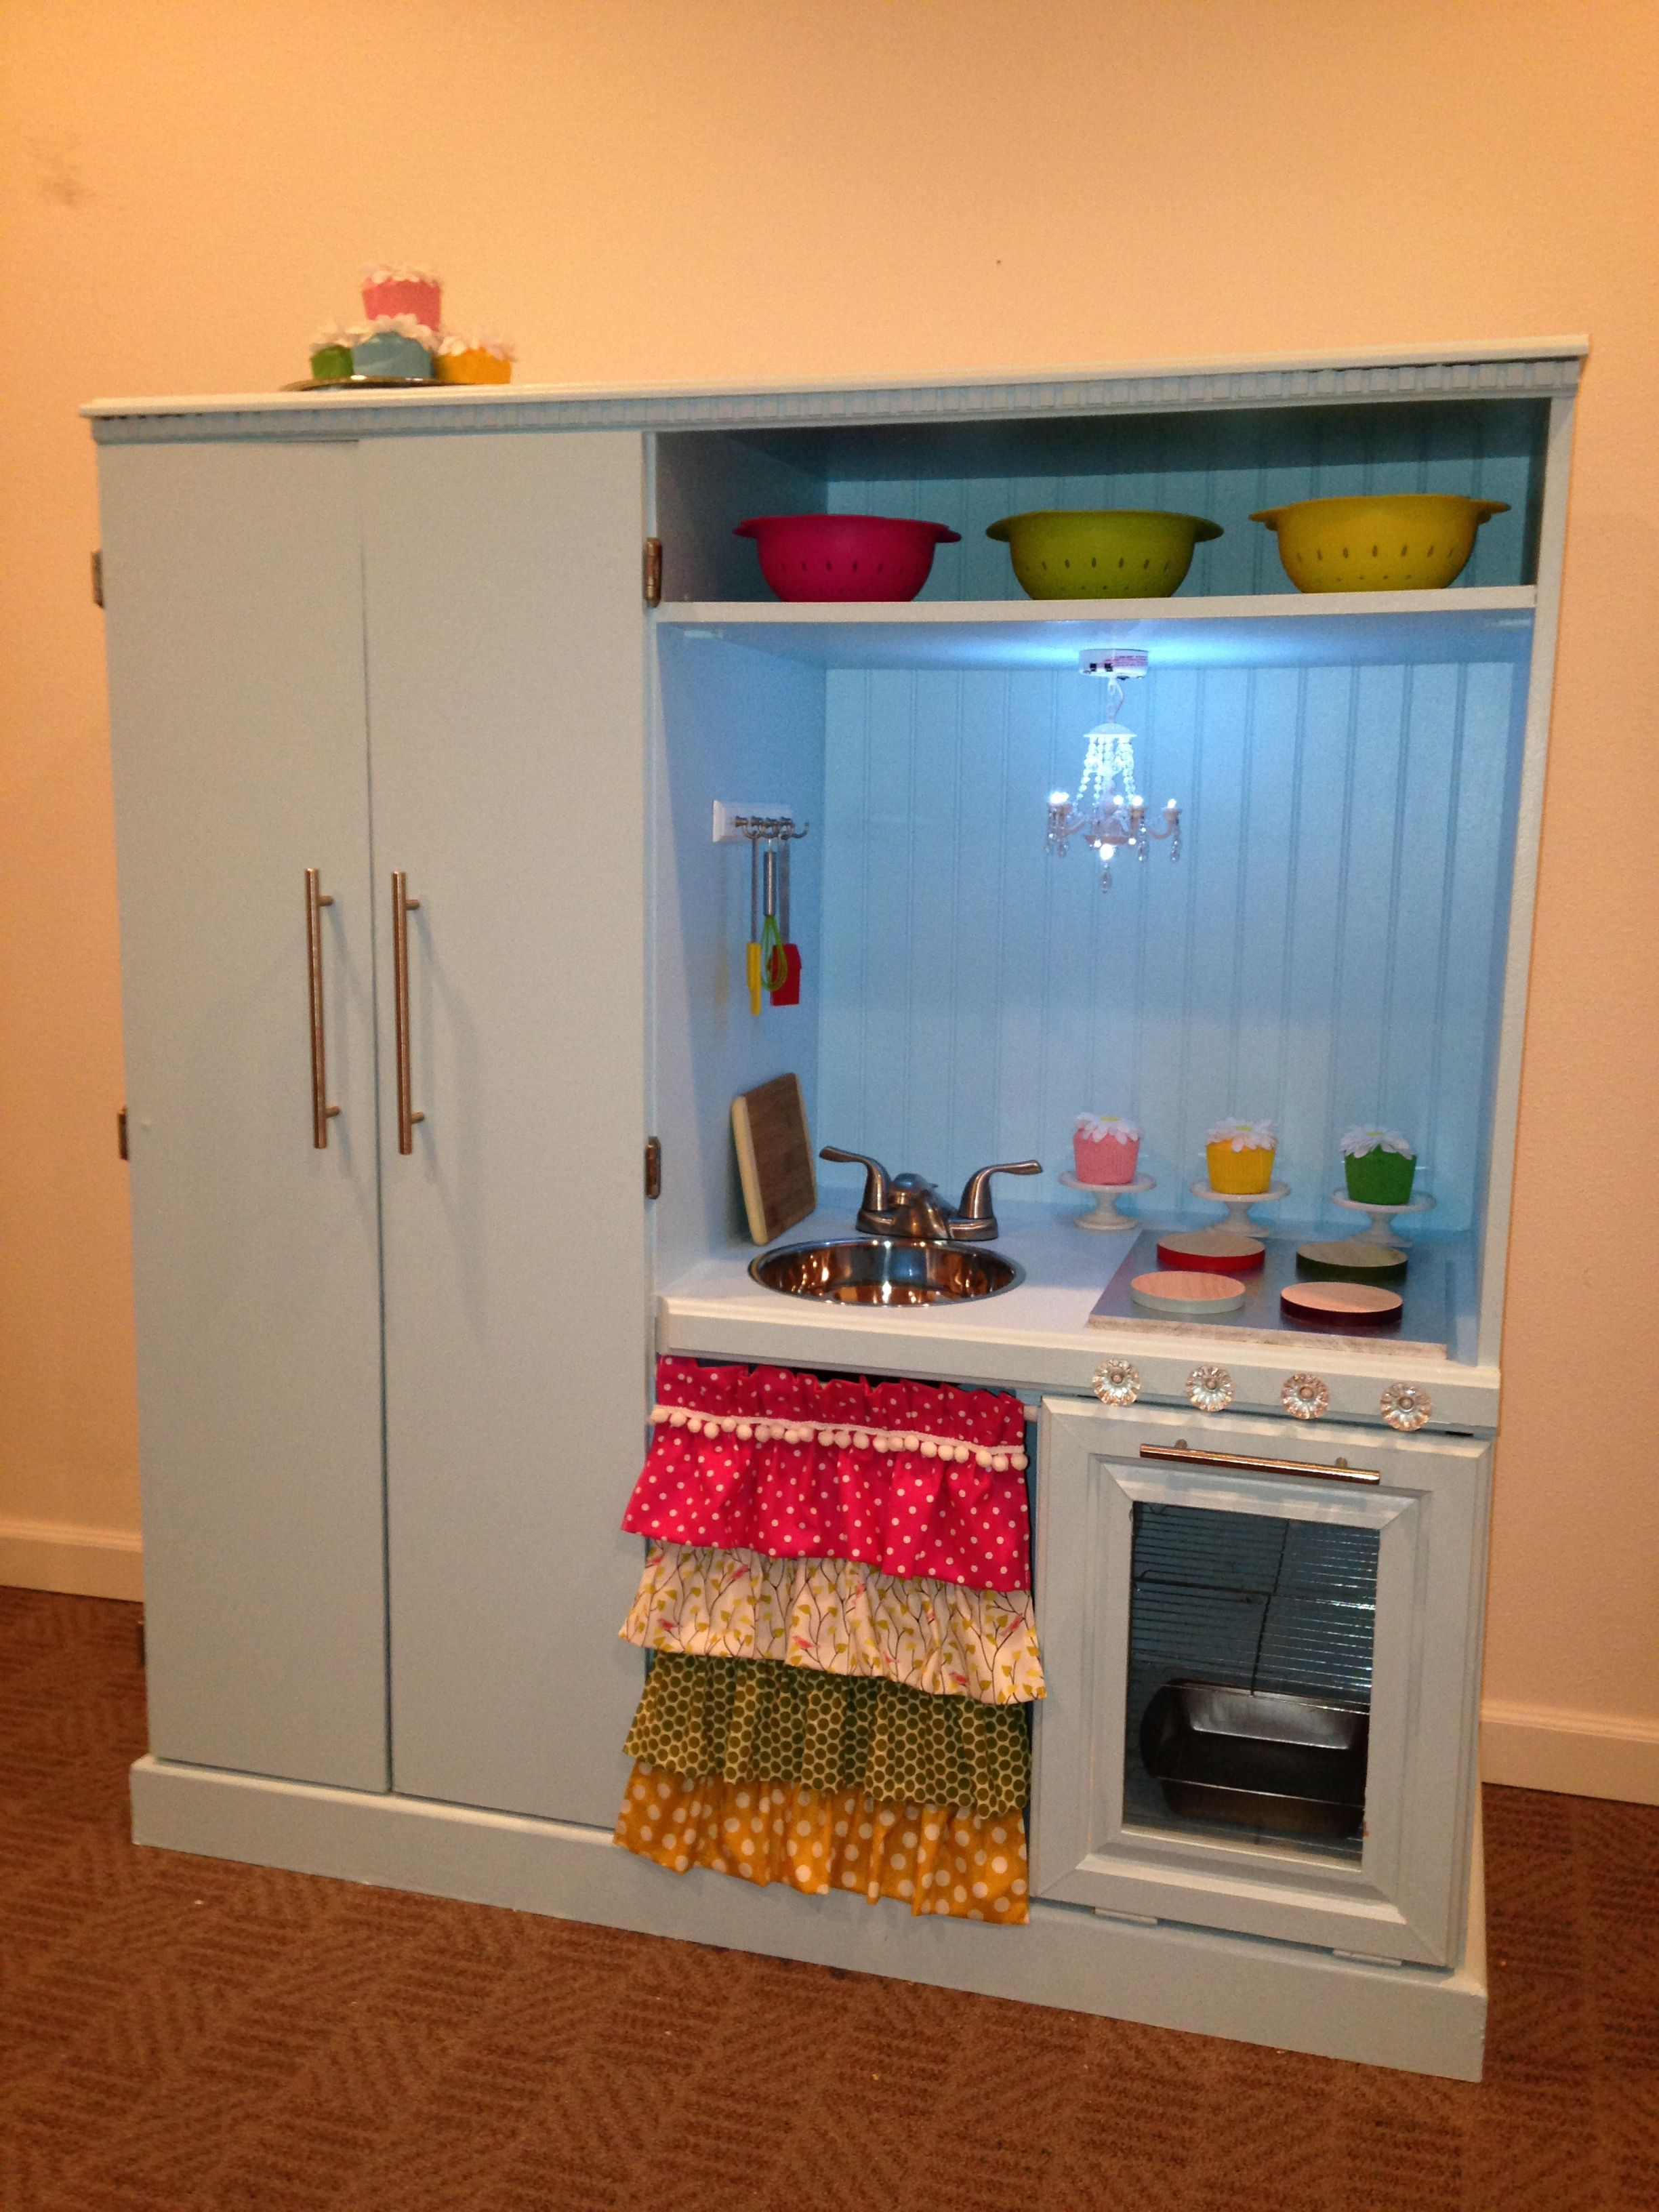 Play kitchen completed!